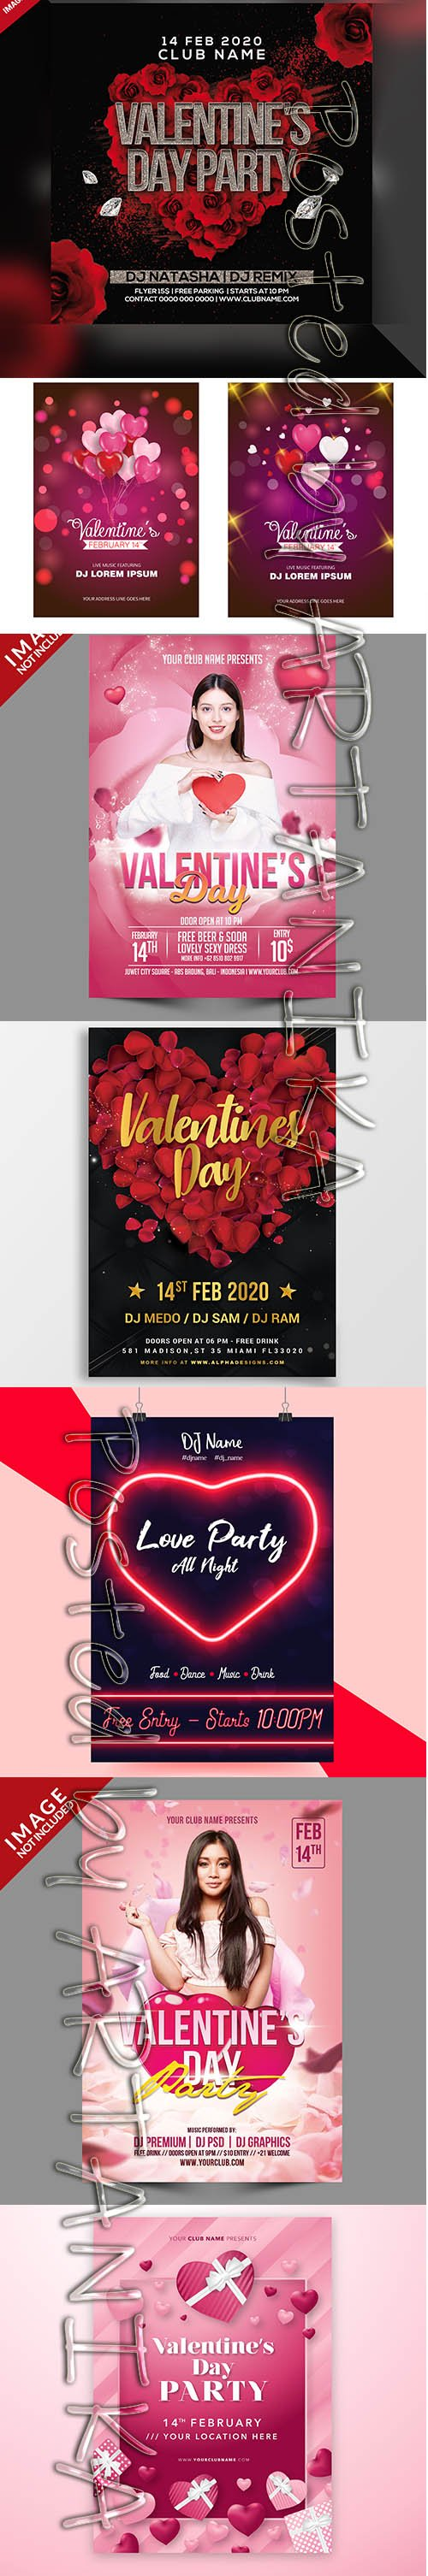 Valentines Party Flyer Psd Template Set Vol 2